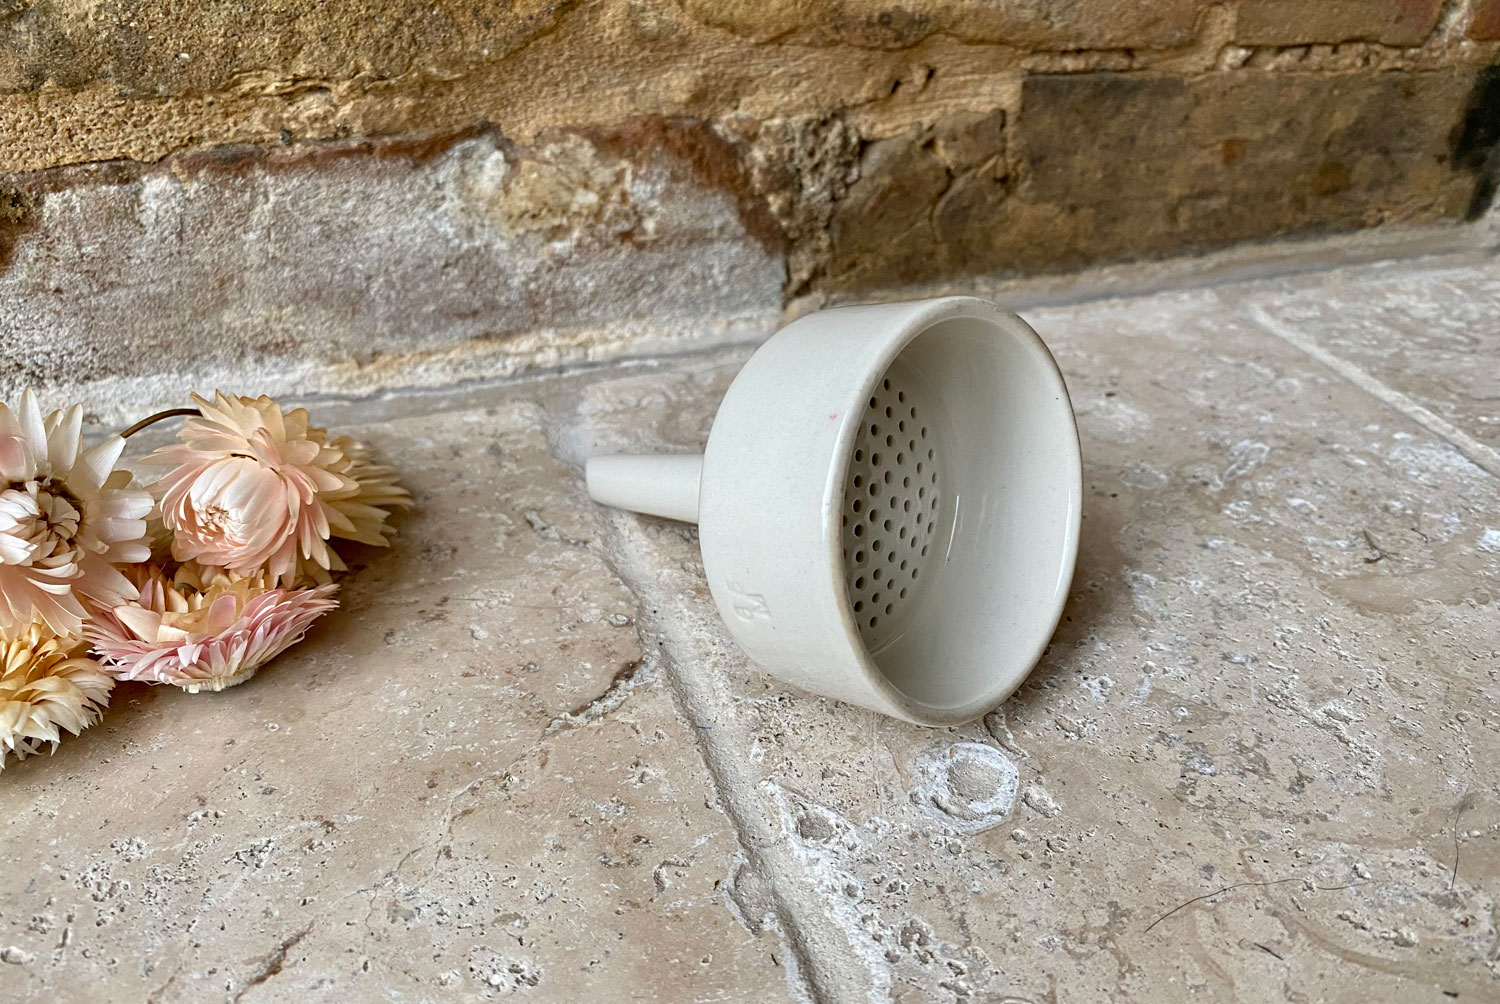 antique white ironstone early 20th century english small minature funnel sieve